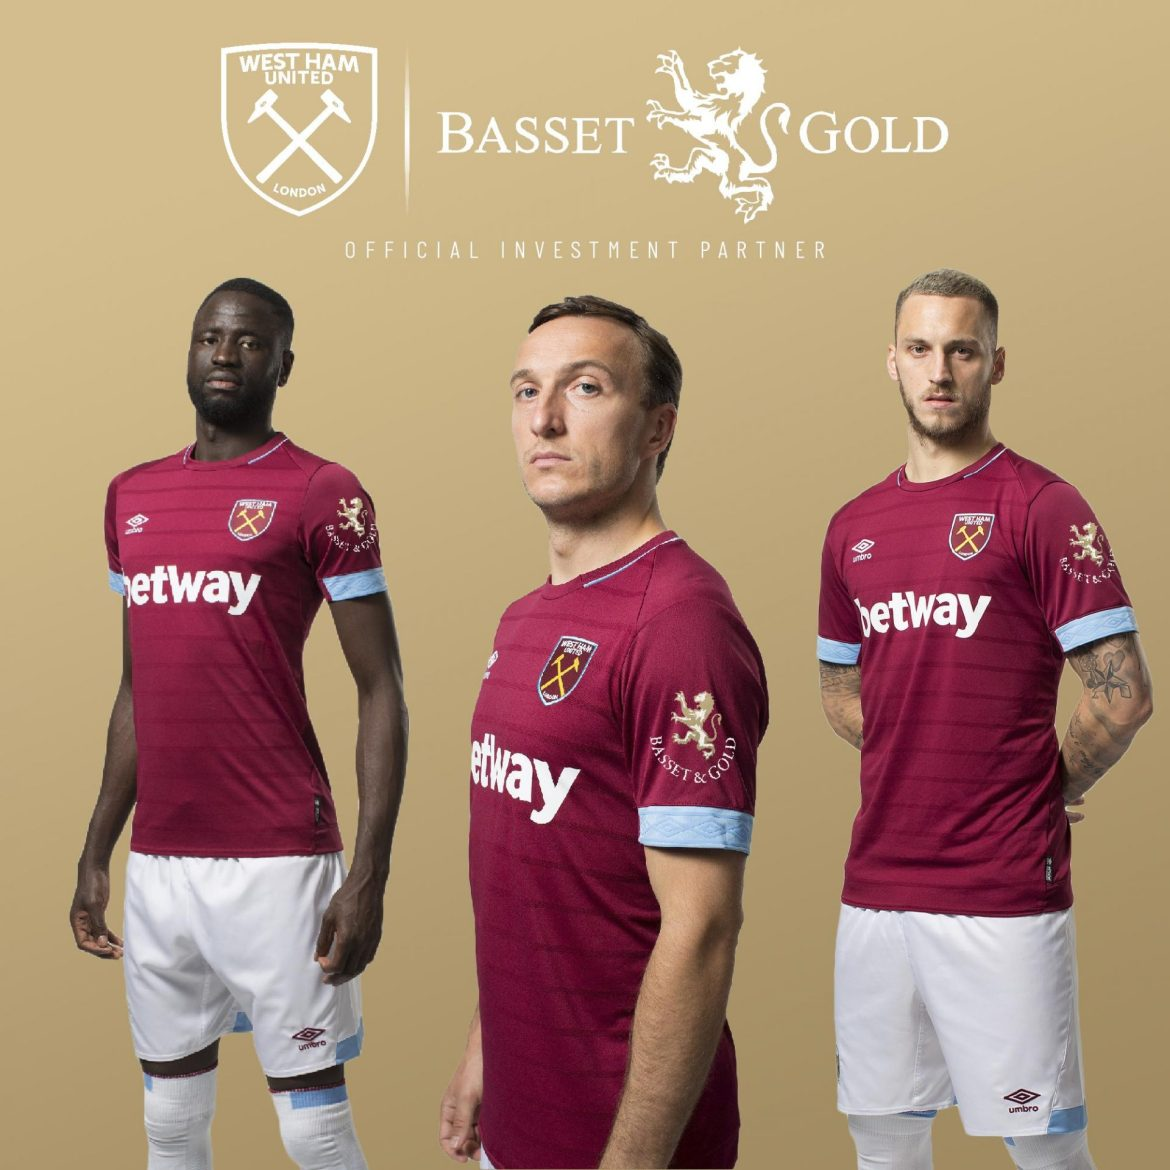 West Ham United Bassels and Gold Shirt Sleeve Sponsor Logo Brand Premier League Football Clubs